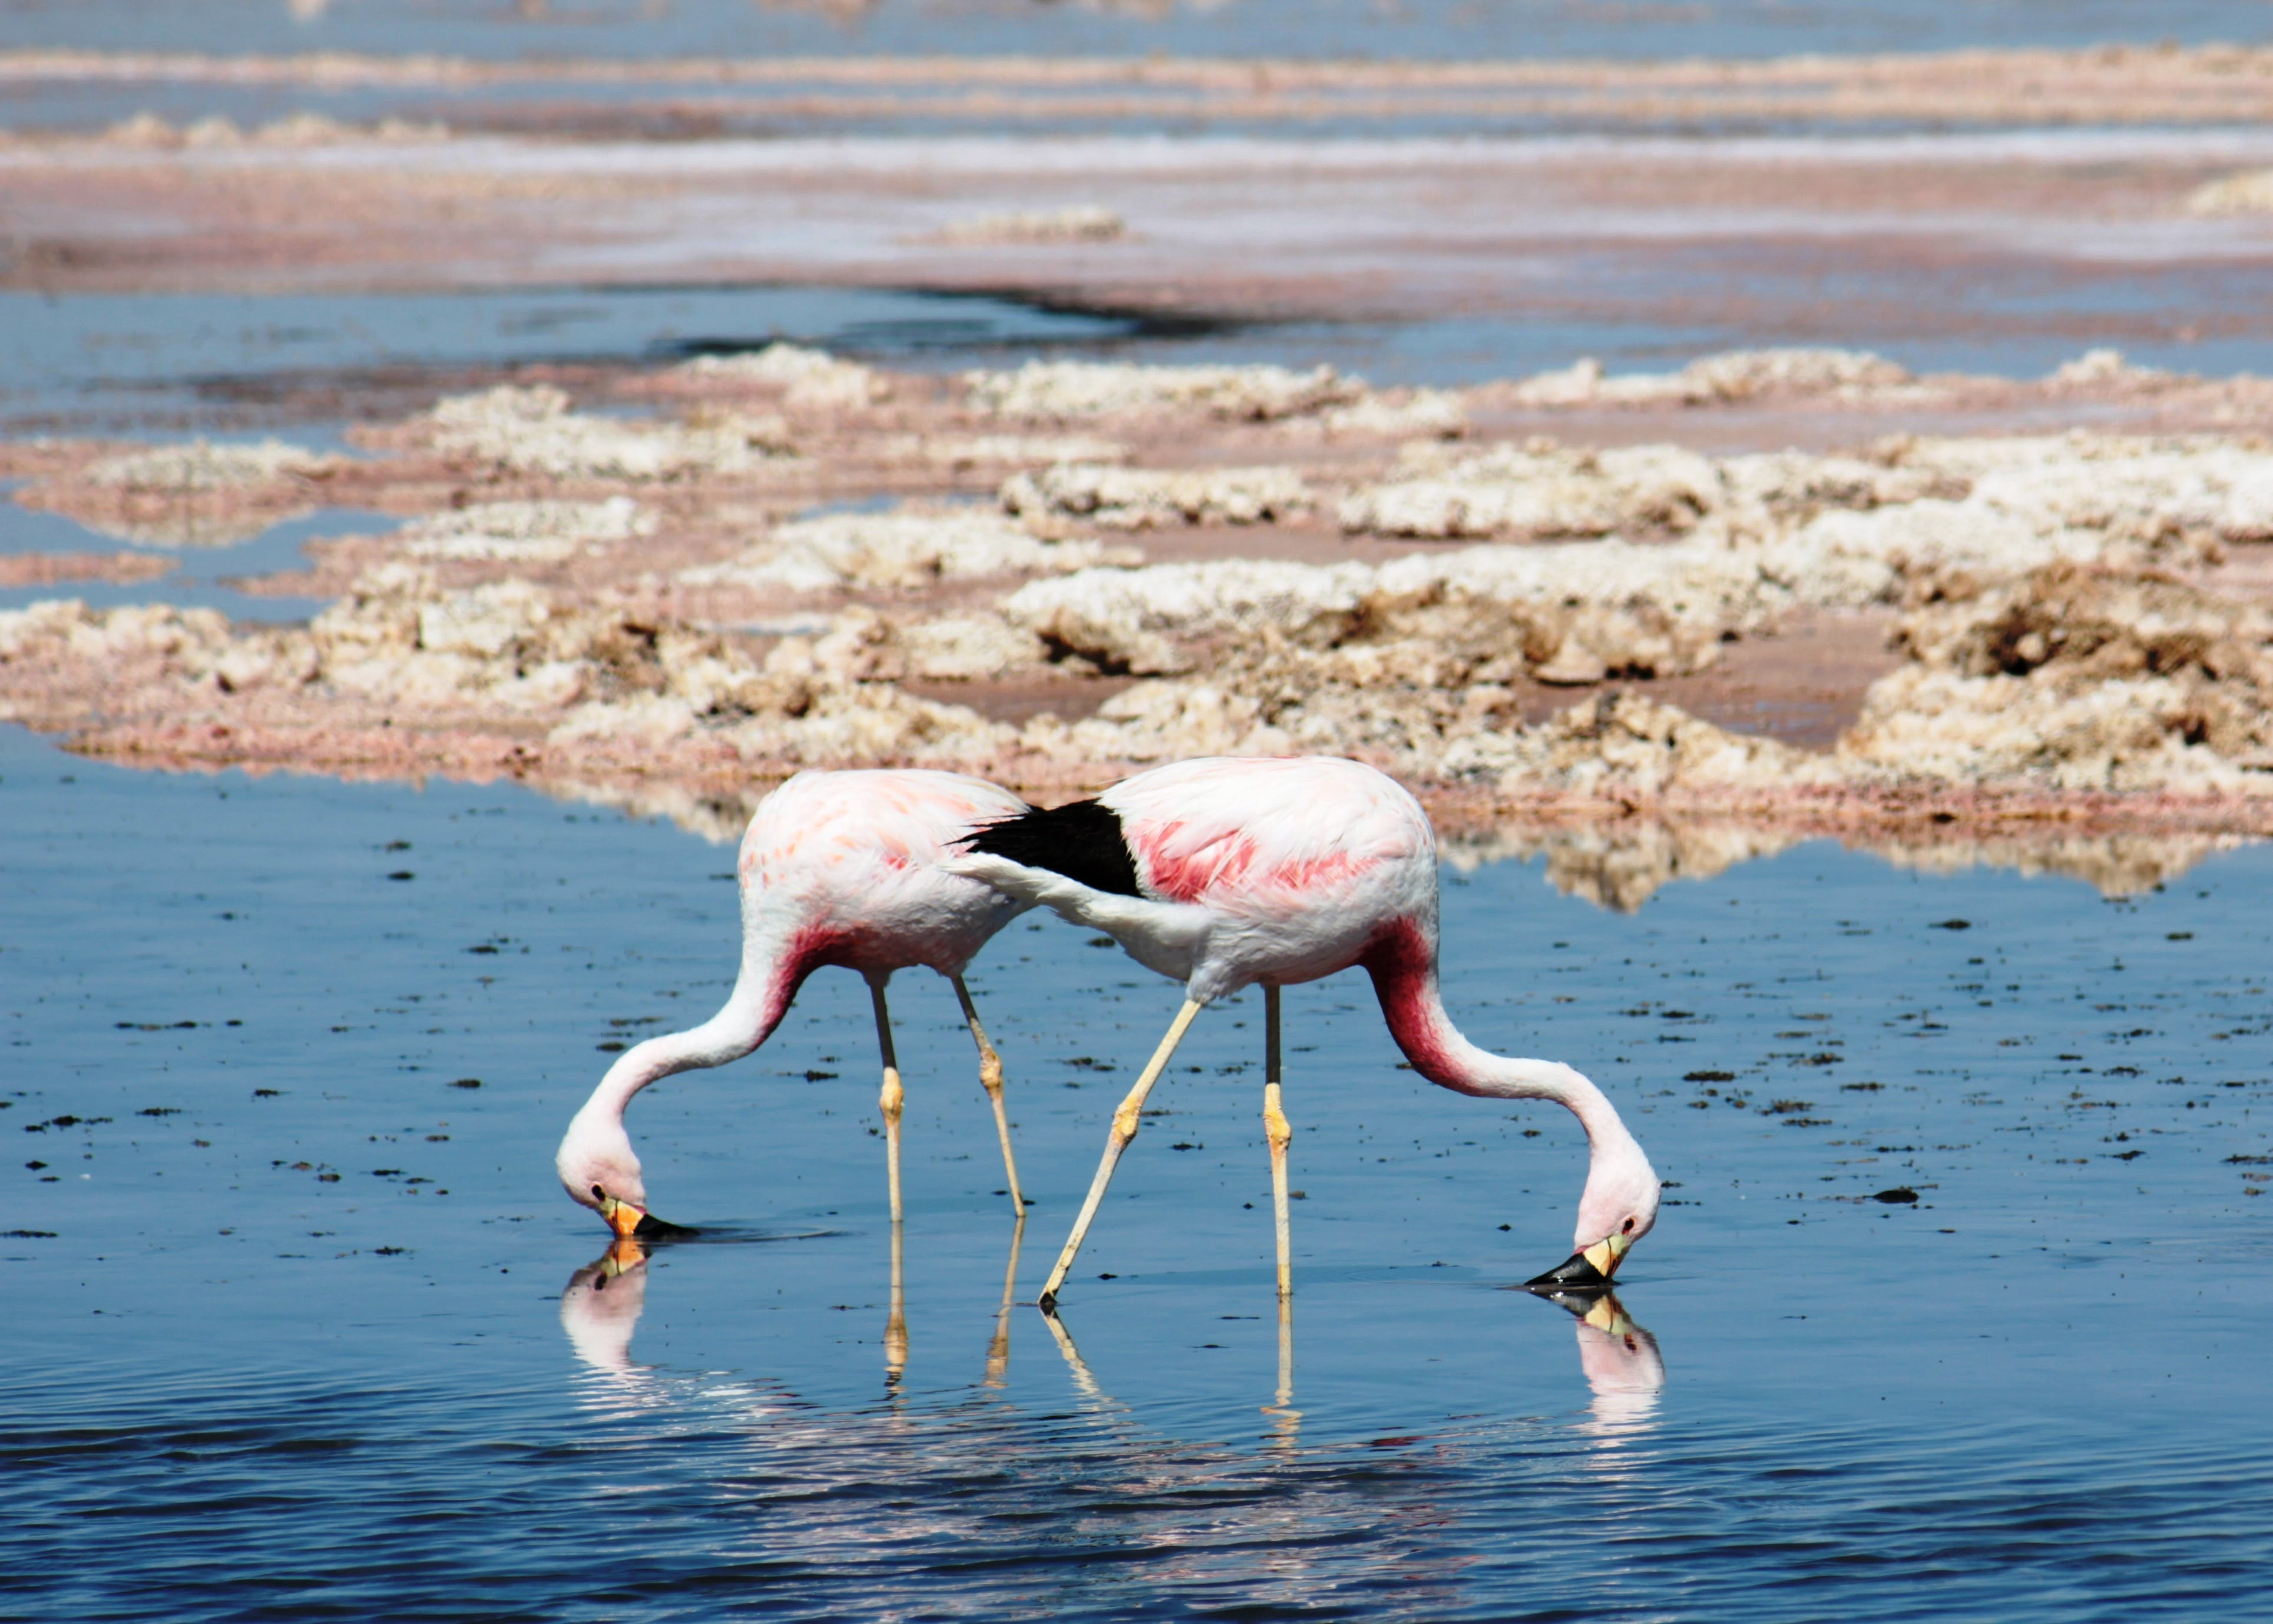 Two flamingos drink from a pool of water in the Atacama Desert.